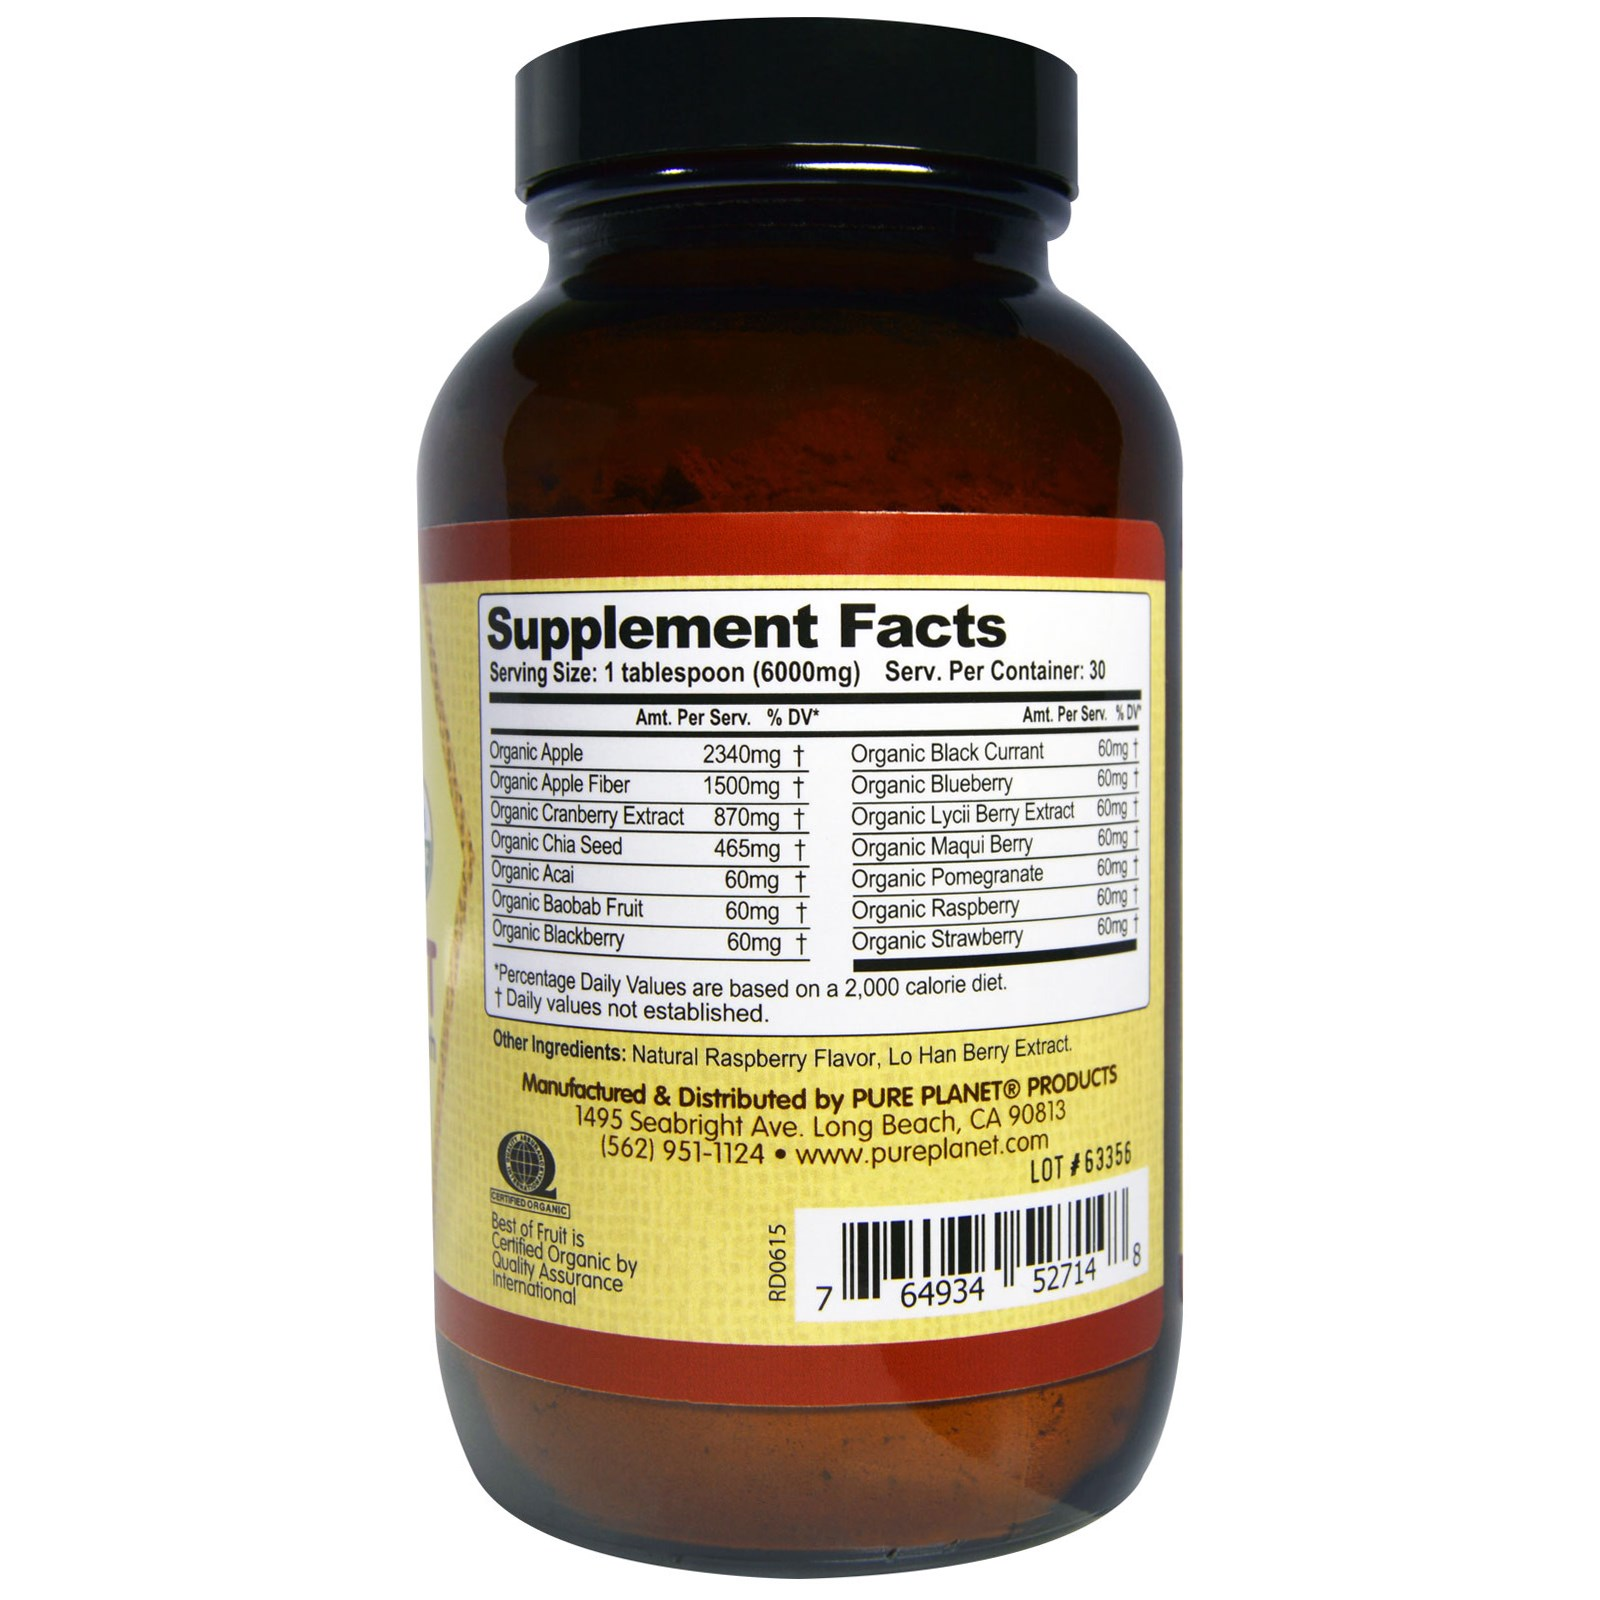 30,+ top-rated healthy products; with discount shipping, incredible values and customer rewards.